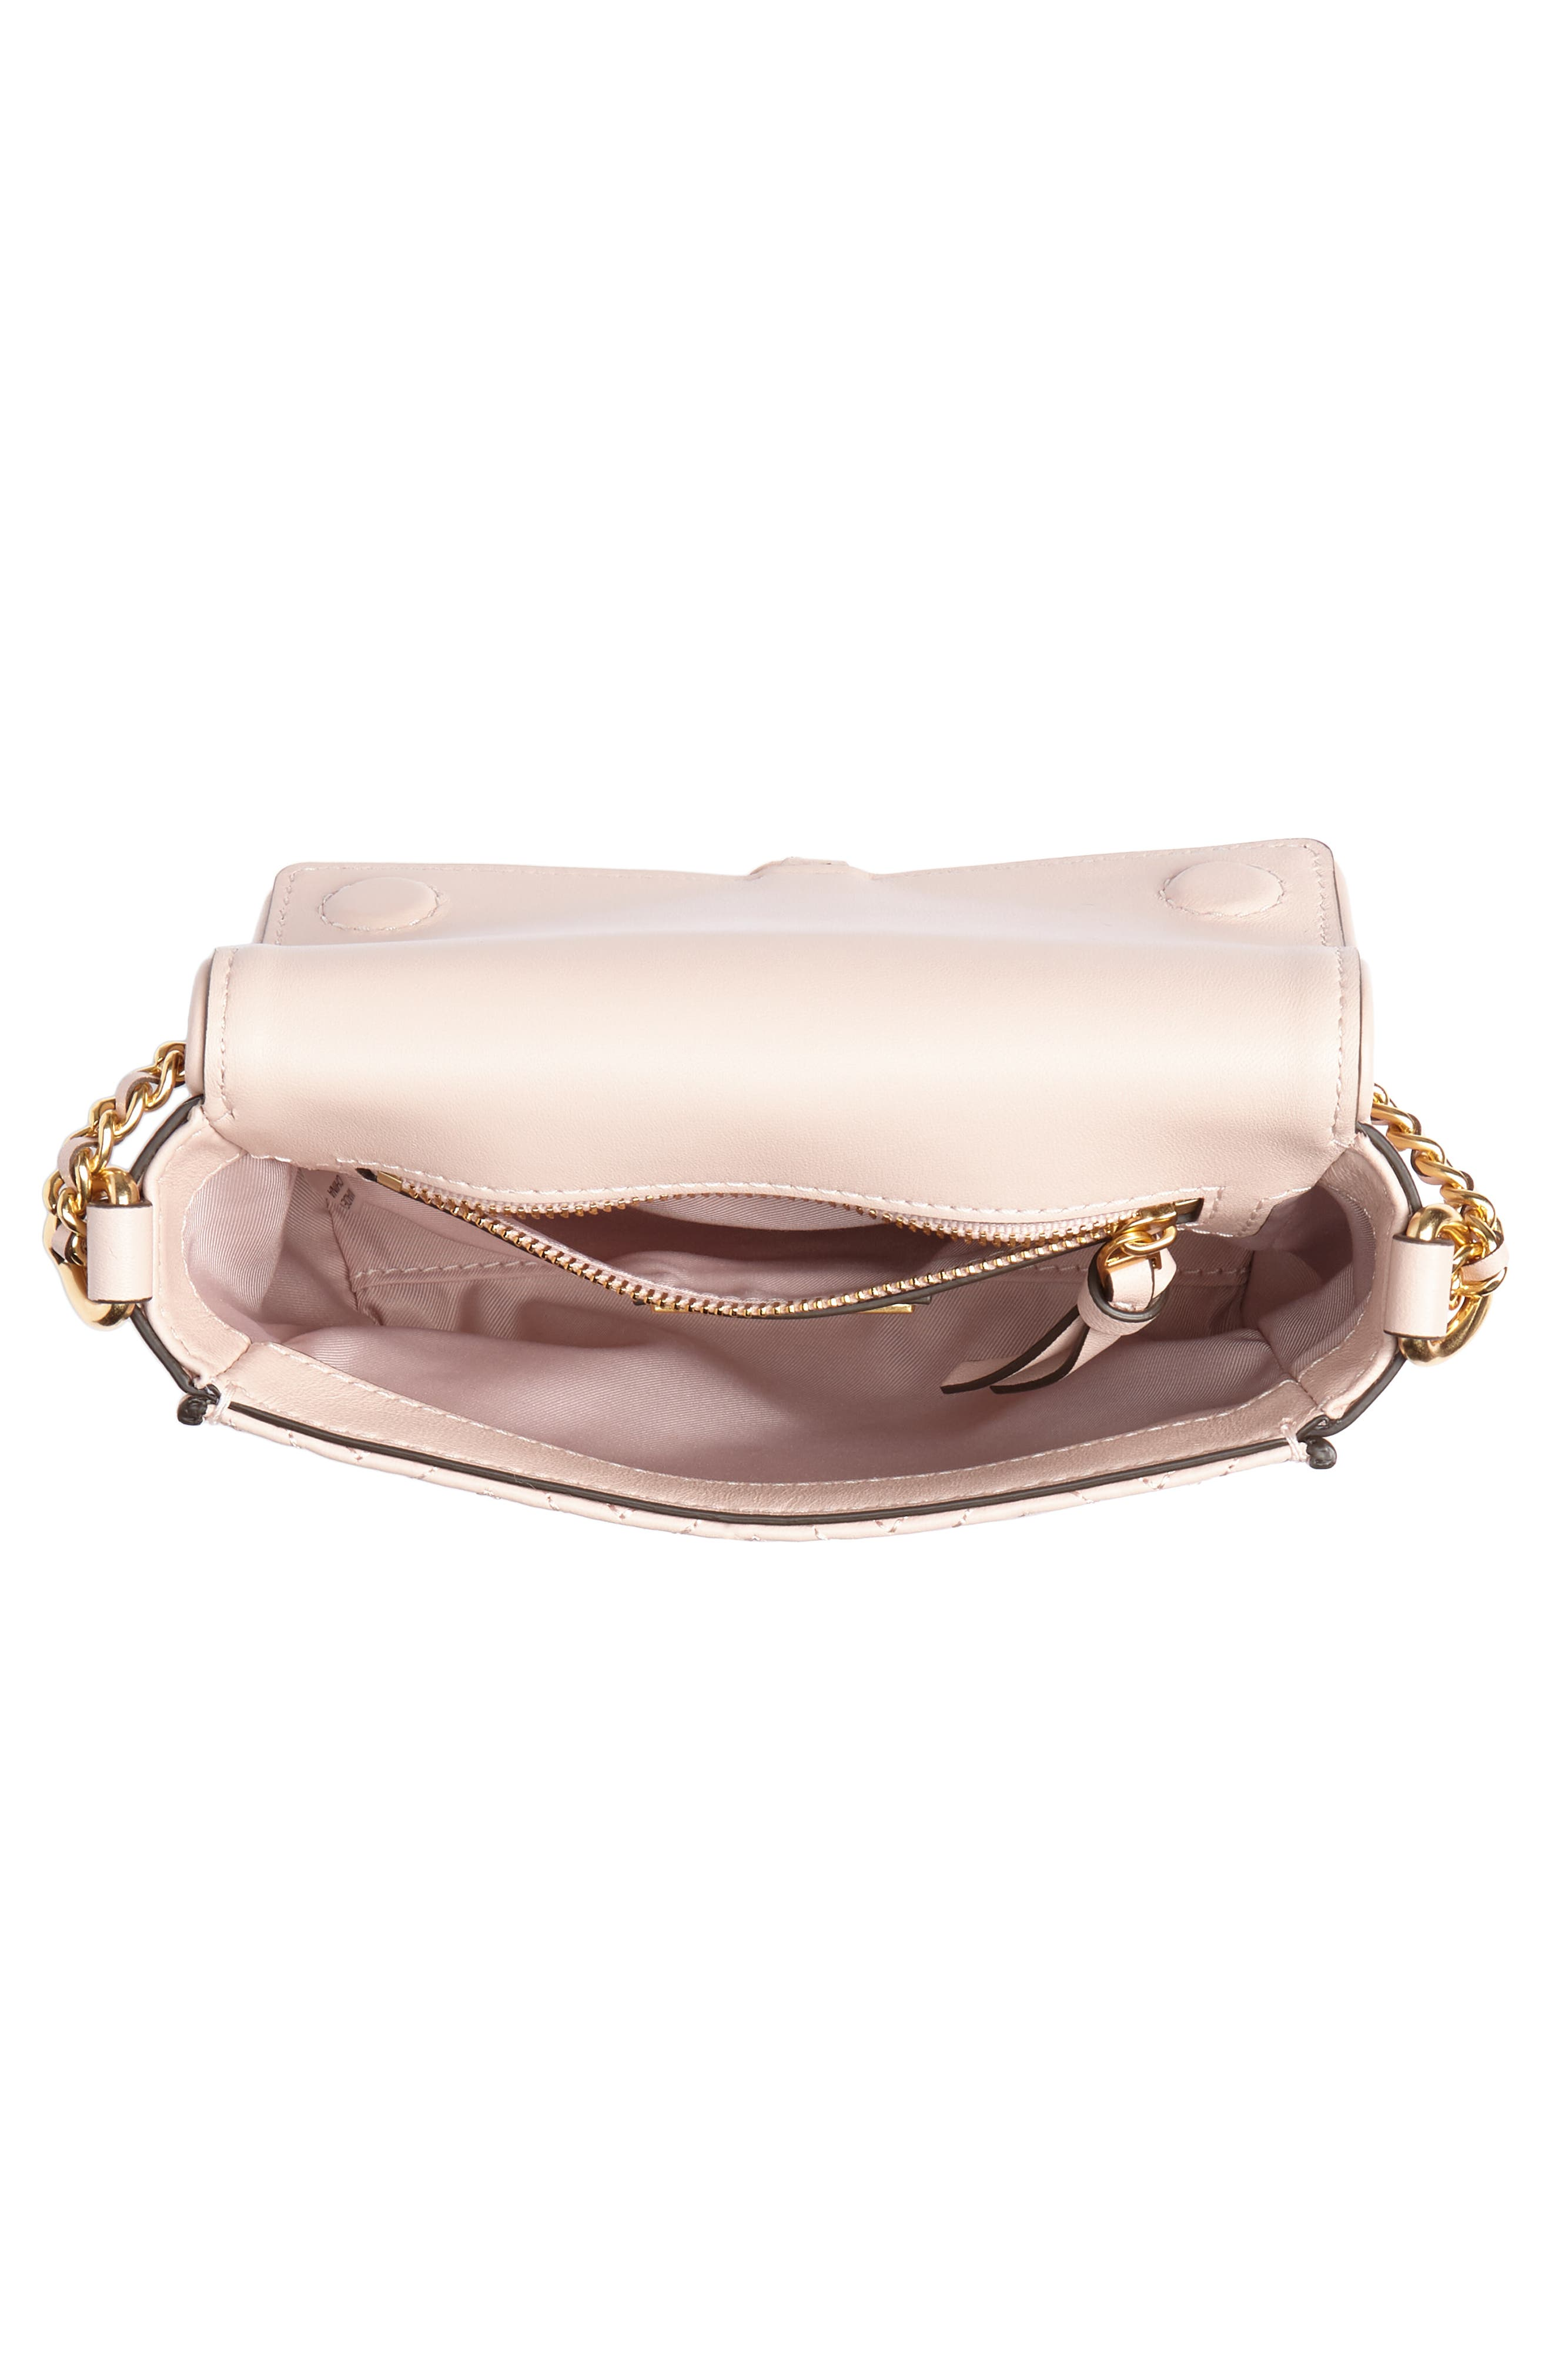 Fleming Quilted Leather Crossbody Bag,                             Alternate thumbnail 5, color,                             Shell Pink